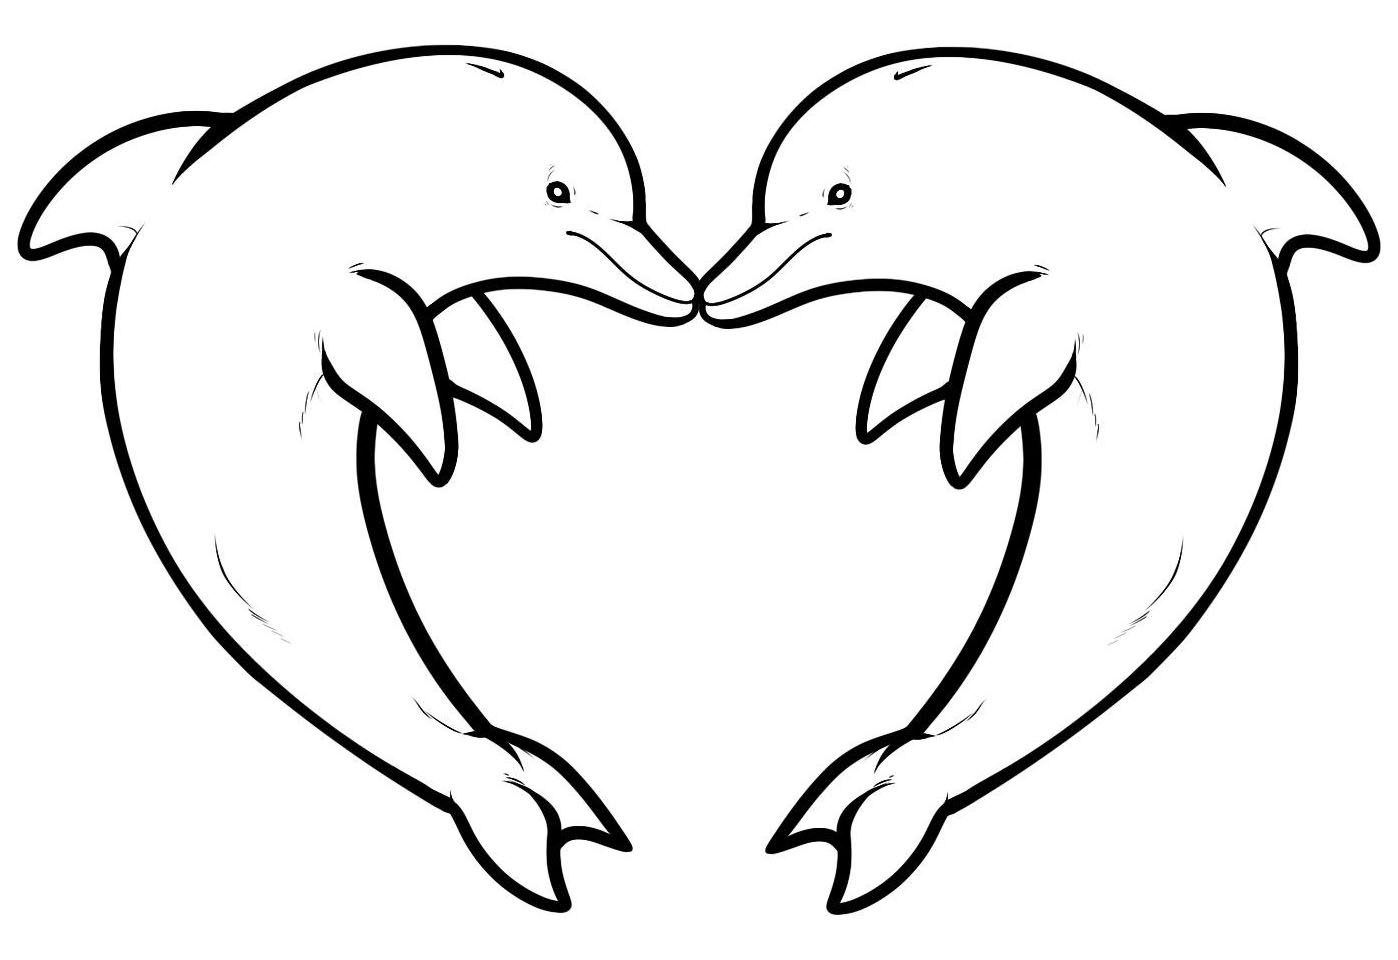 dolphin coloring pictures to print free printable dolphin coloring pages for kids coloring pictures dolphin print to